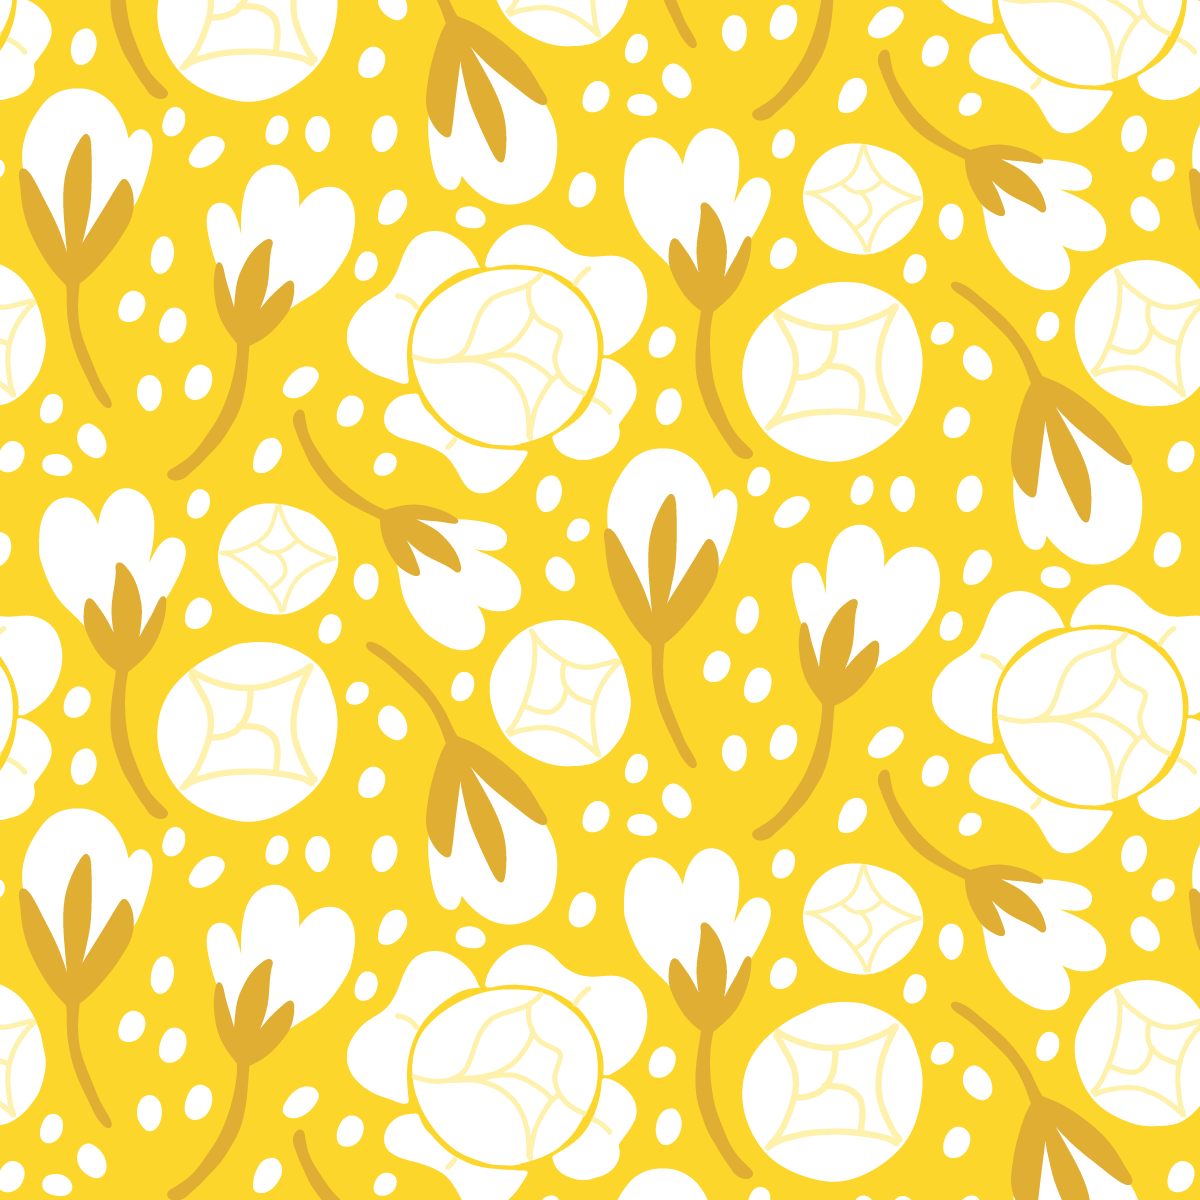 Globe flower pattern | Color Diaries: Yellow by Pace Creative Design Studio